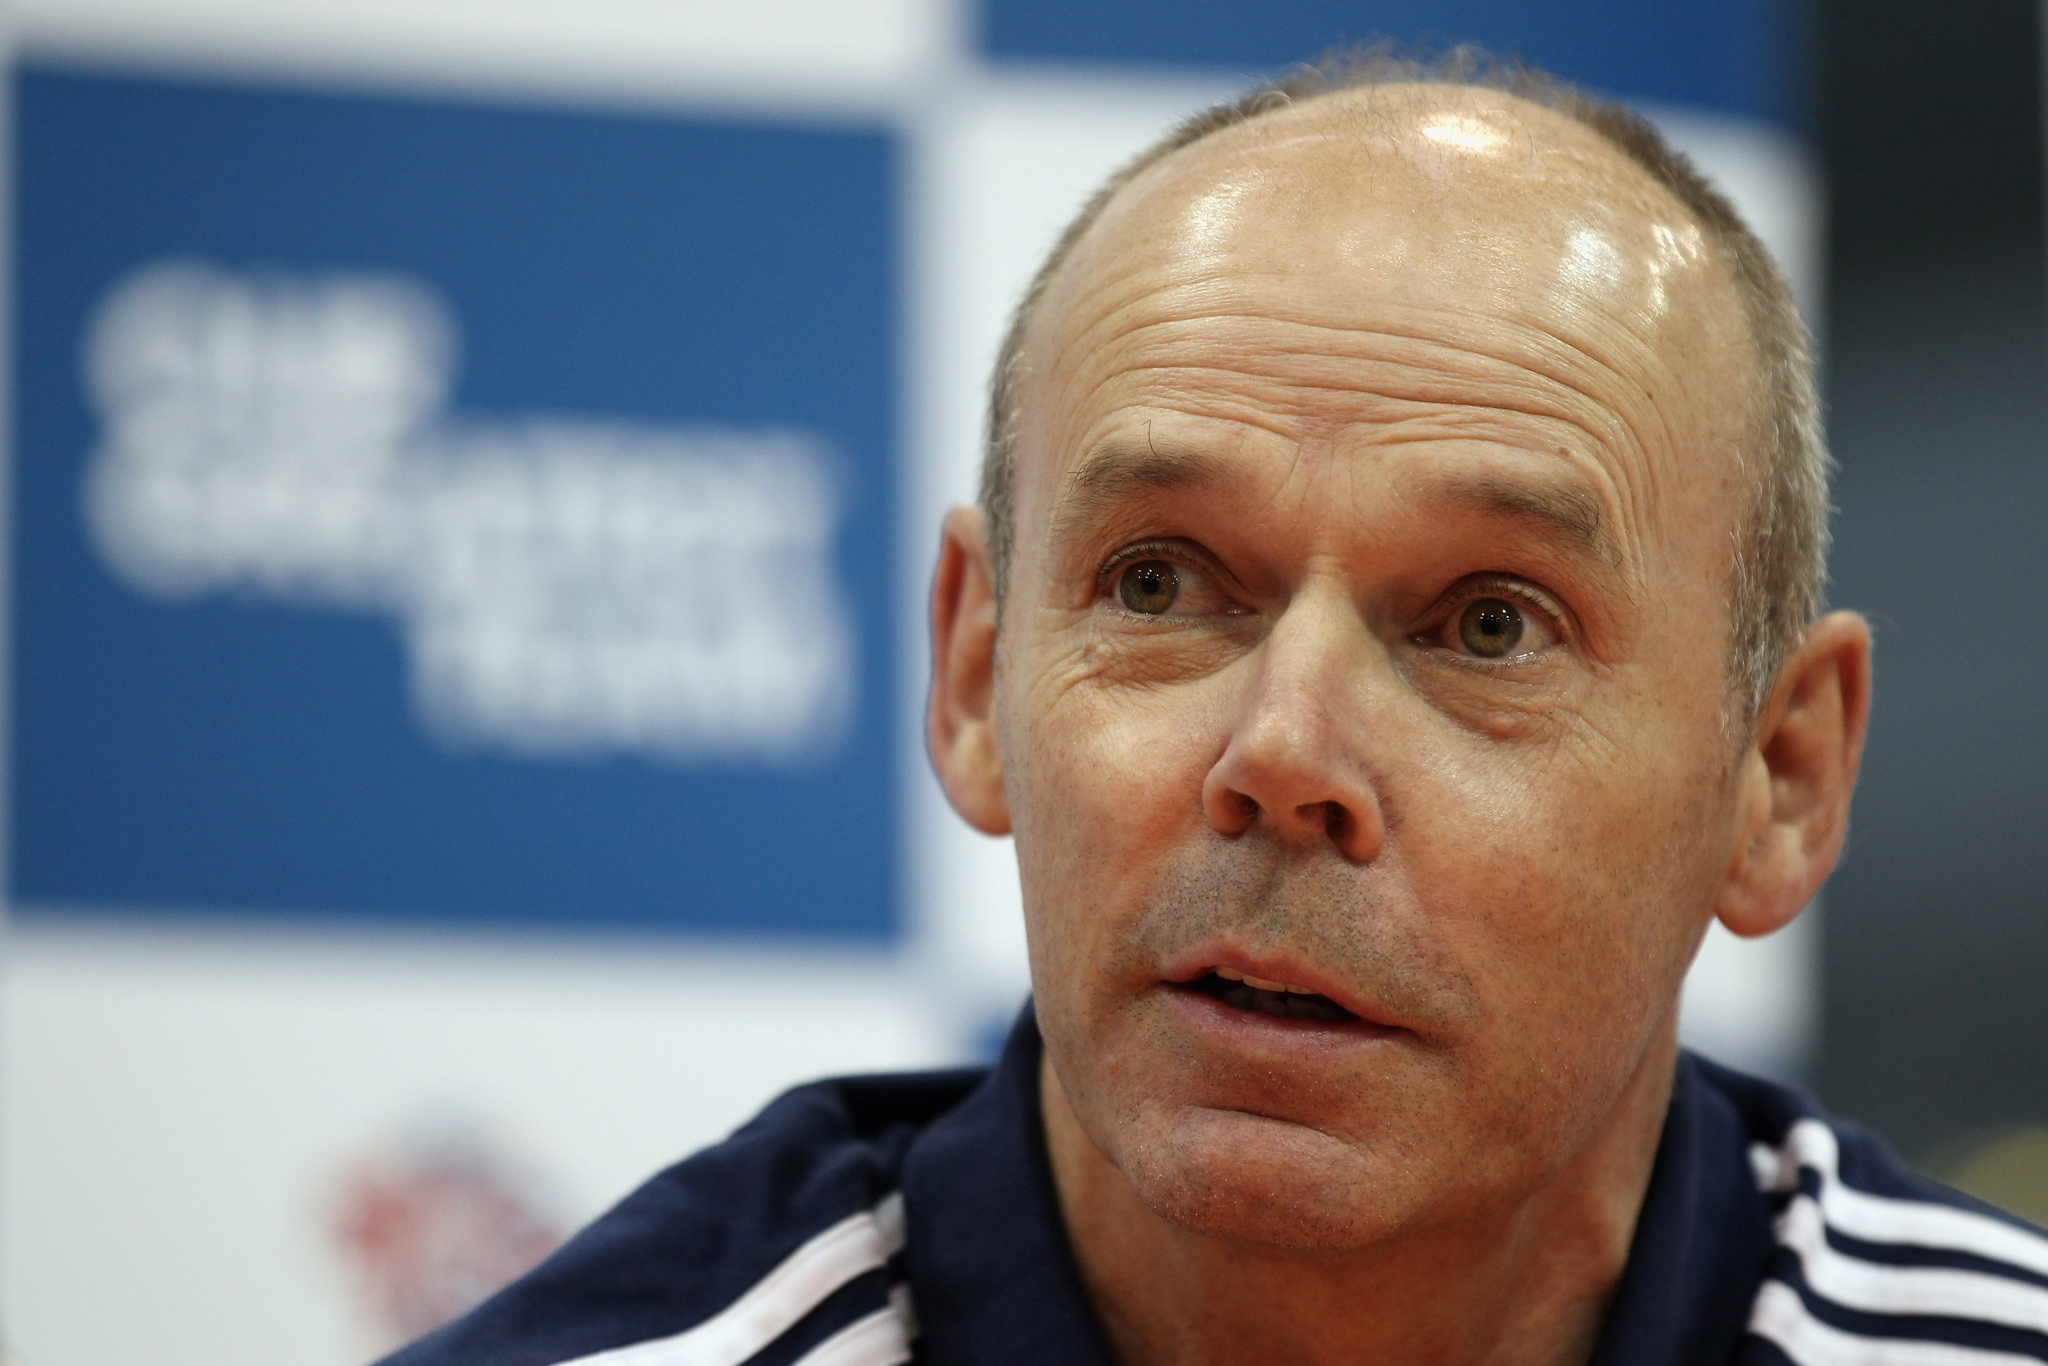 Photo: Team GB Deputy Chef de Mission Sir Clive Woodward talks to the media . (Photo by Bryn Lennon/Getty Images)